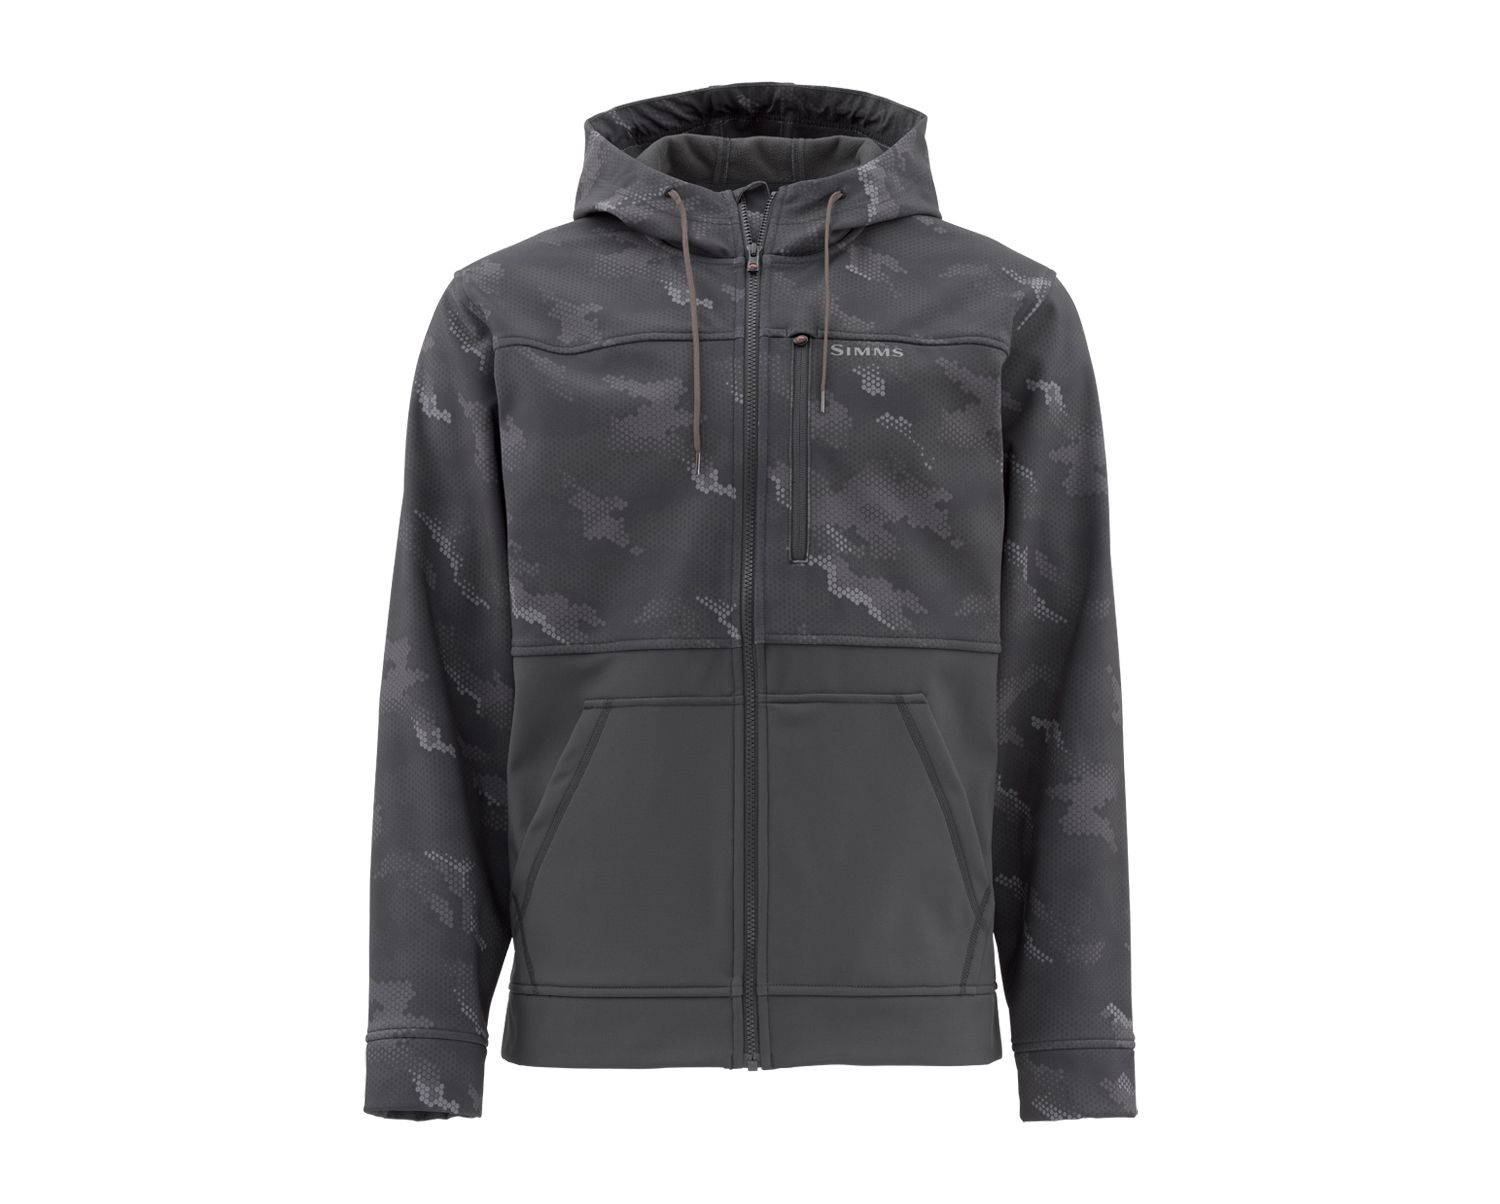 Simms Rogue Hoody - Hex Camo Carbon